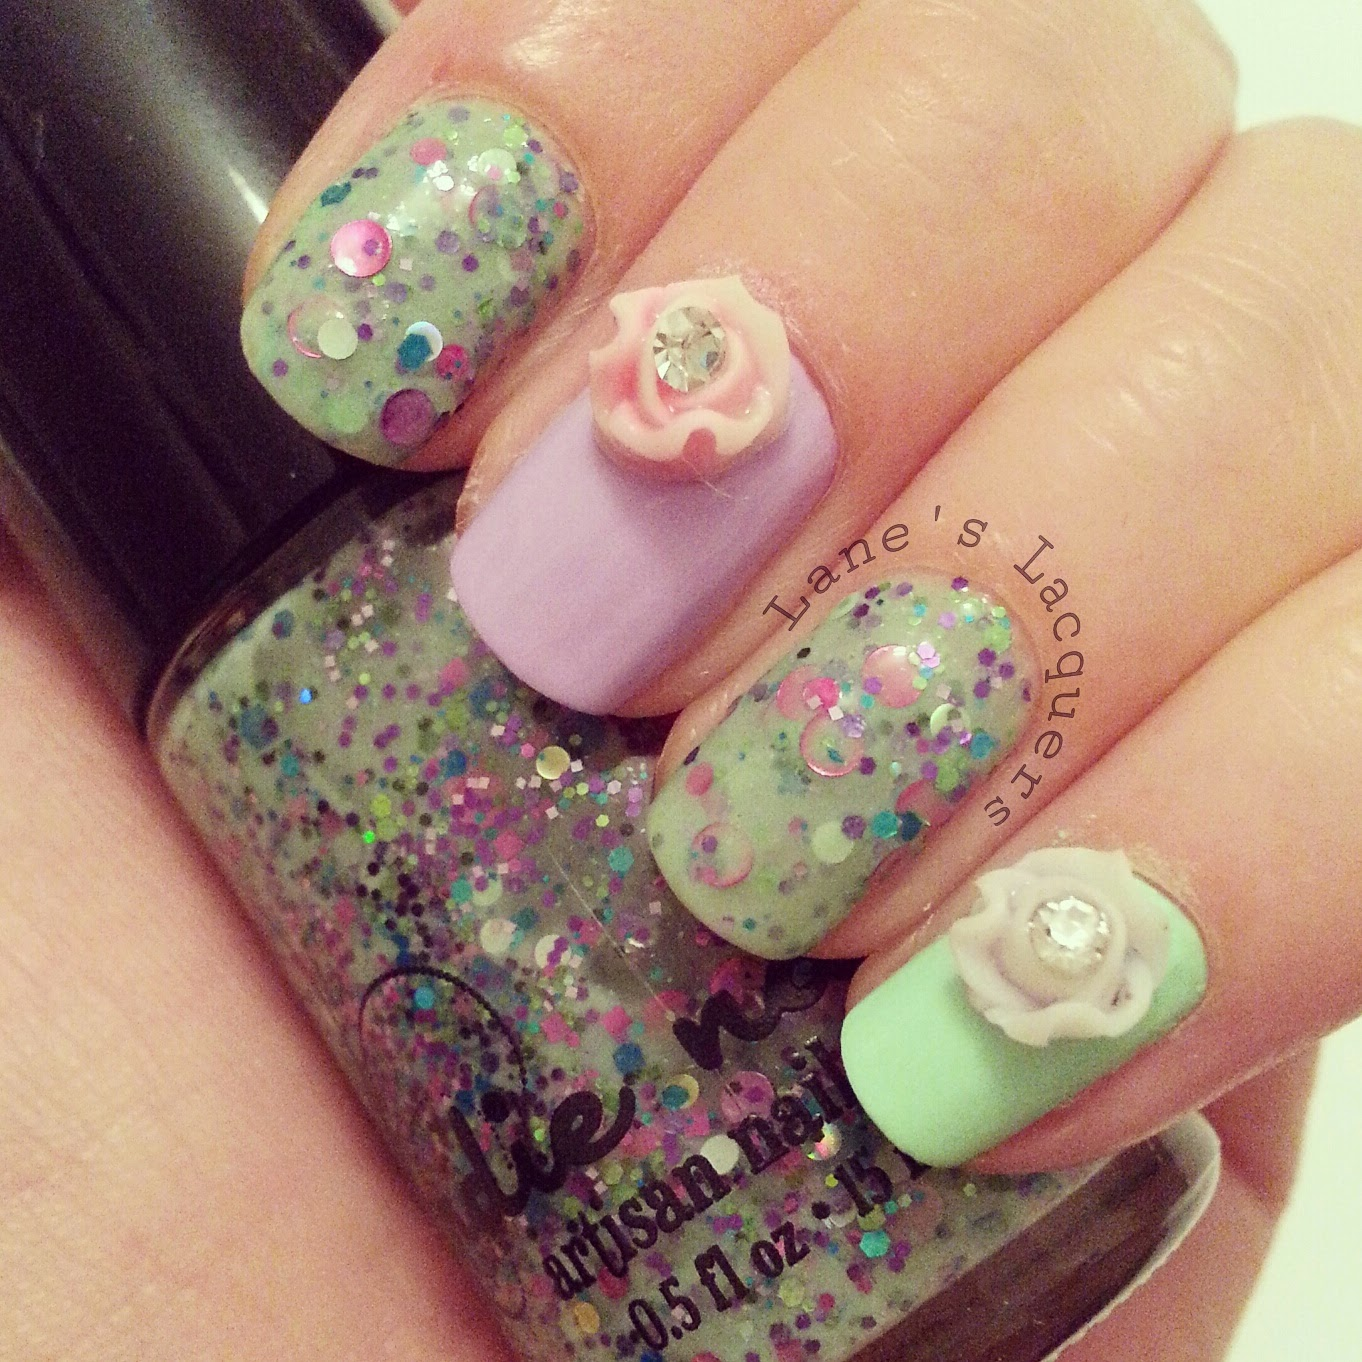 tri-polish-challenge-jindie-nails-princess-breath-3d-flowers-nail-art (2)